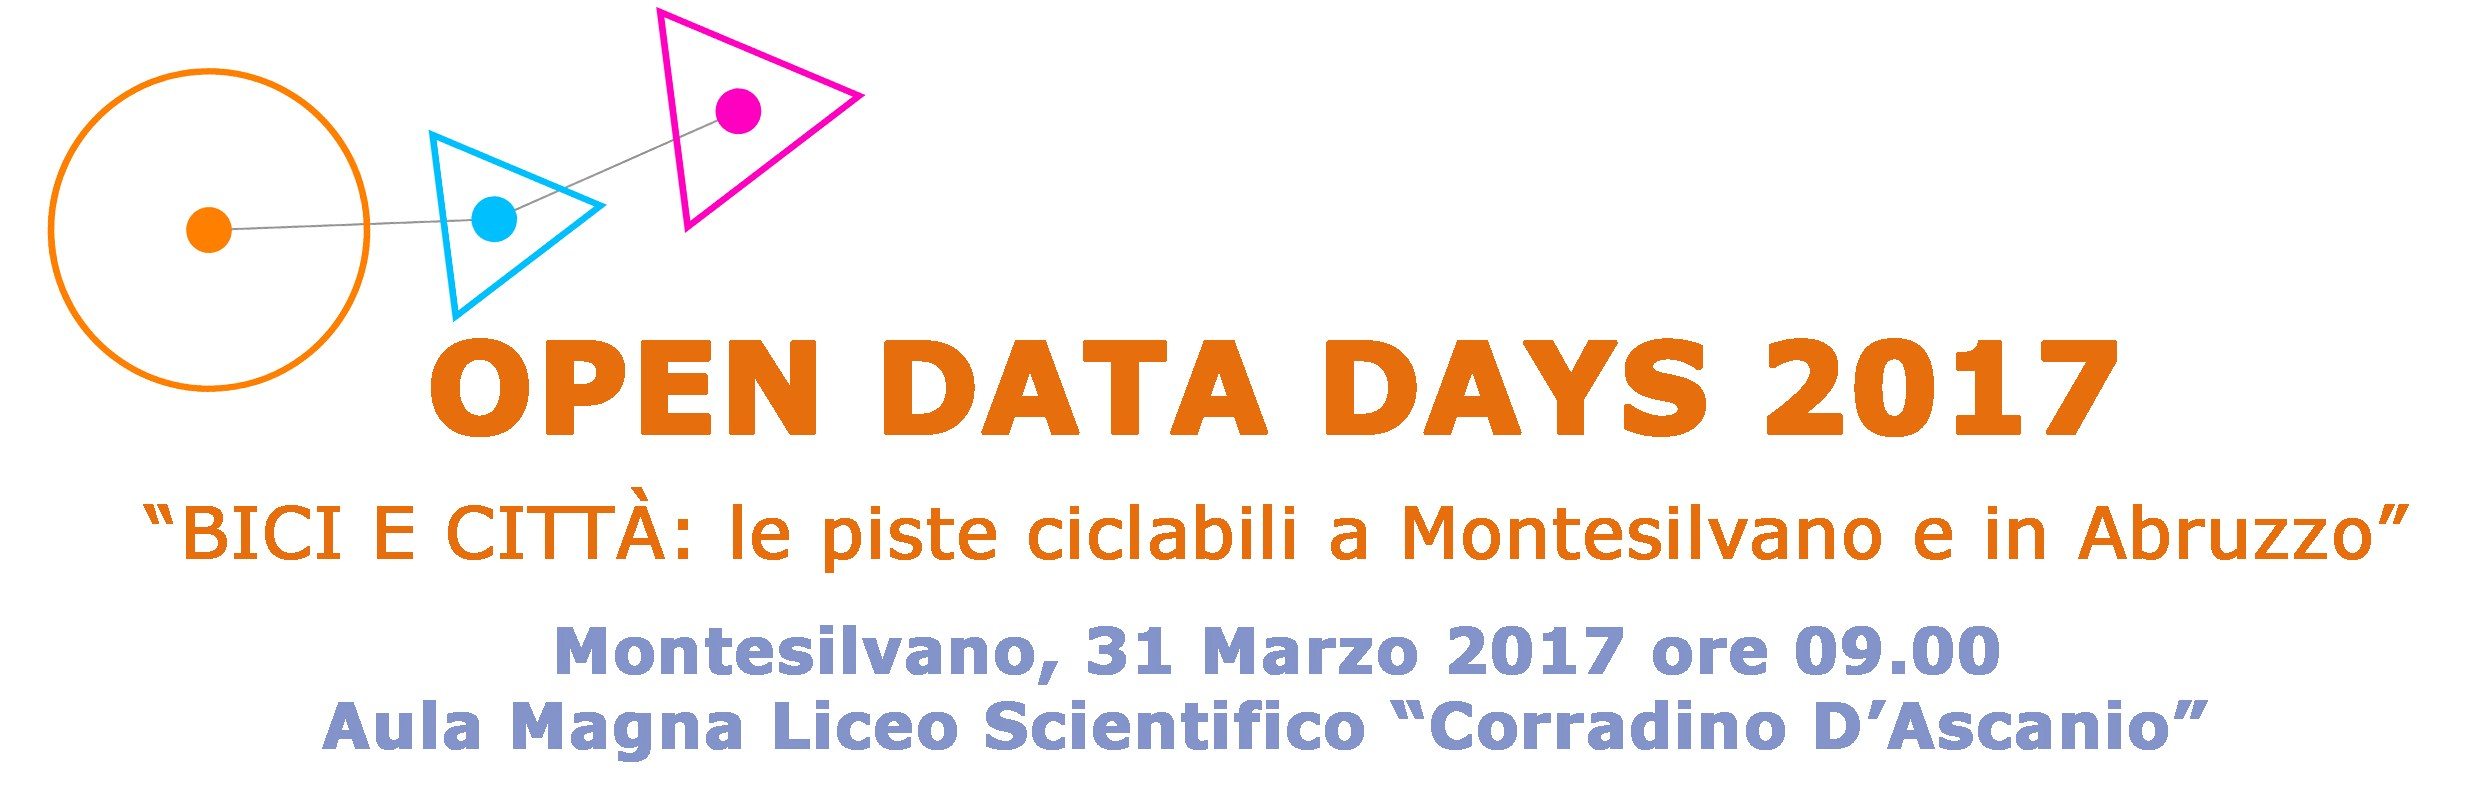 banner open data day  Montesilvano